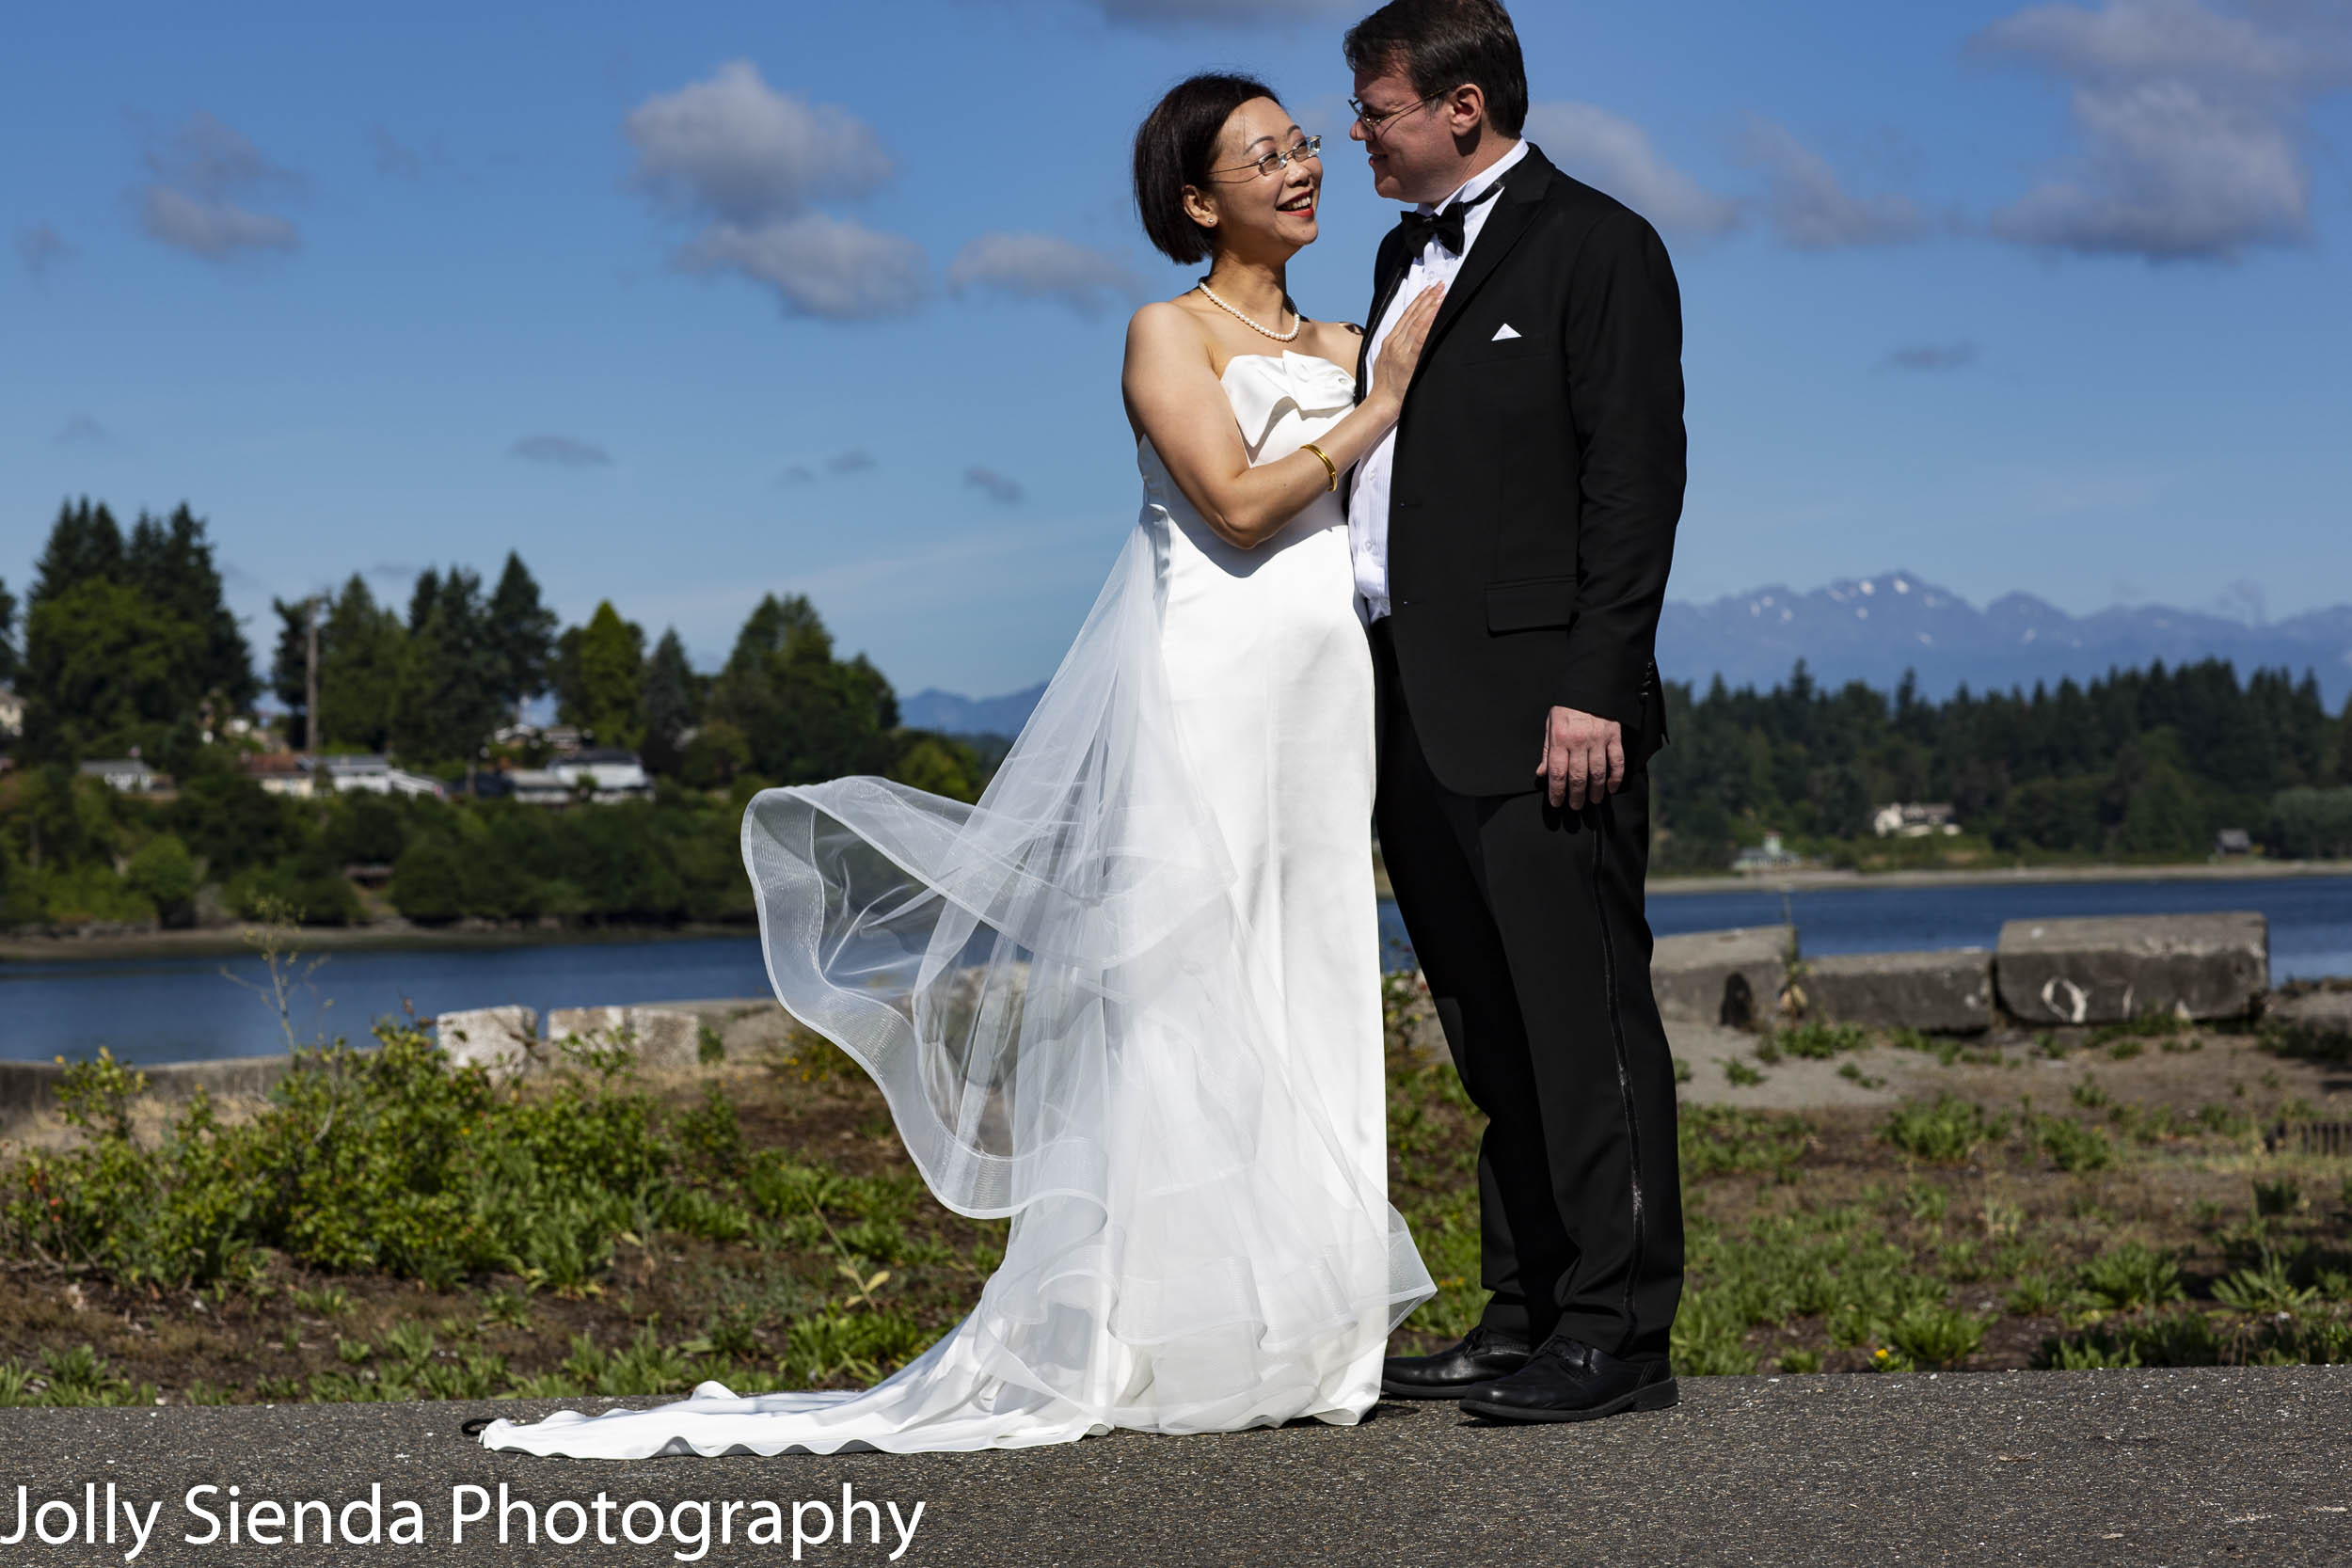 Caroline and Cameron at Lions Park, Bremerton, WA